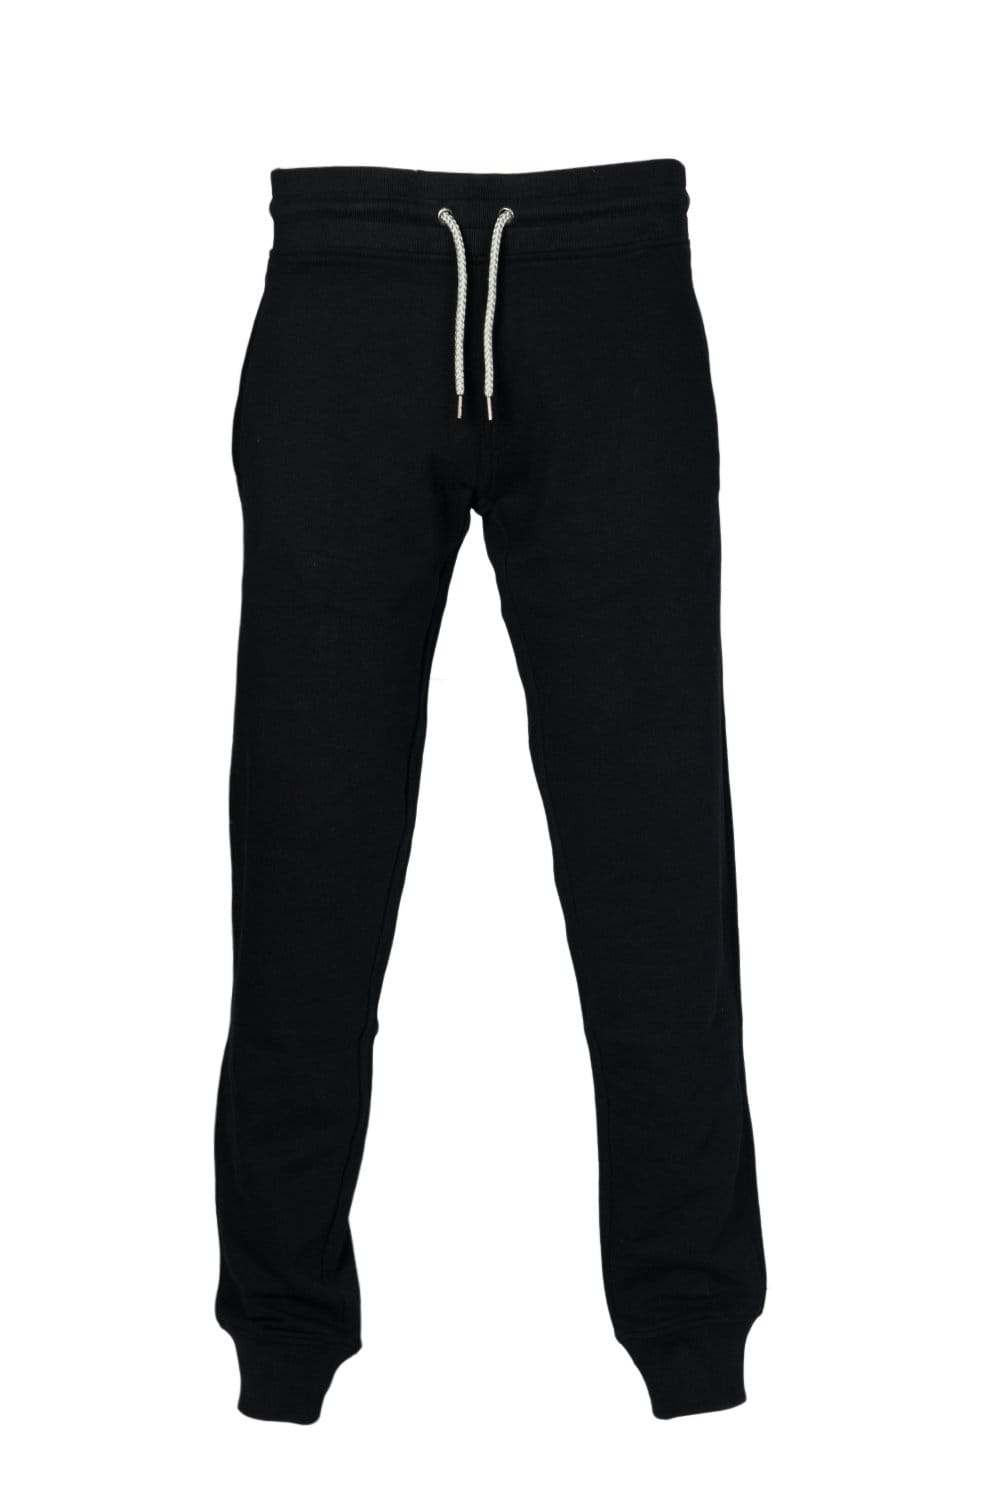 outlet on sale amazing selection great deals Armani Jeans Jogging Bottoms in Burgundy Black Grey and Navy Blue 06P84RN